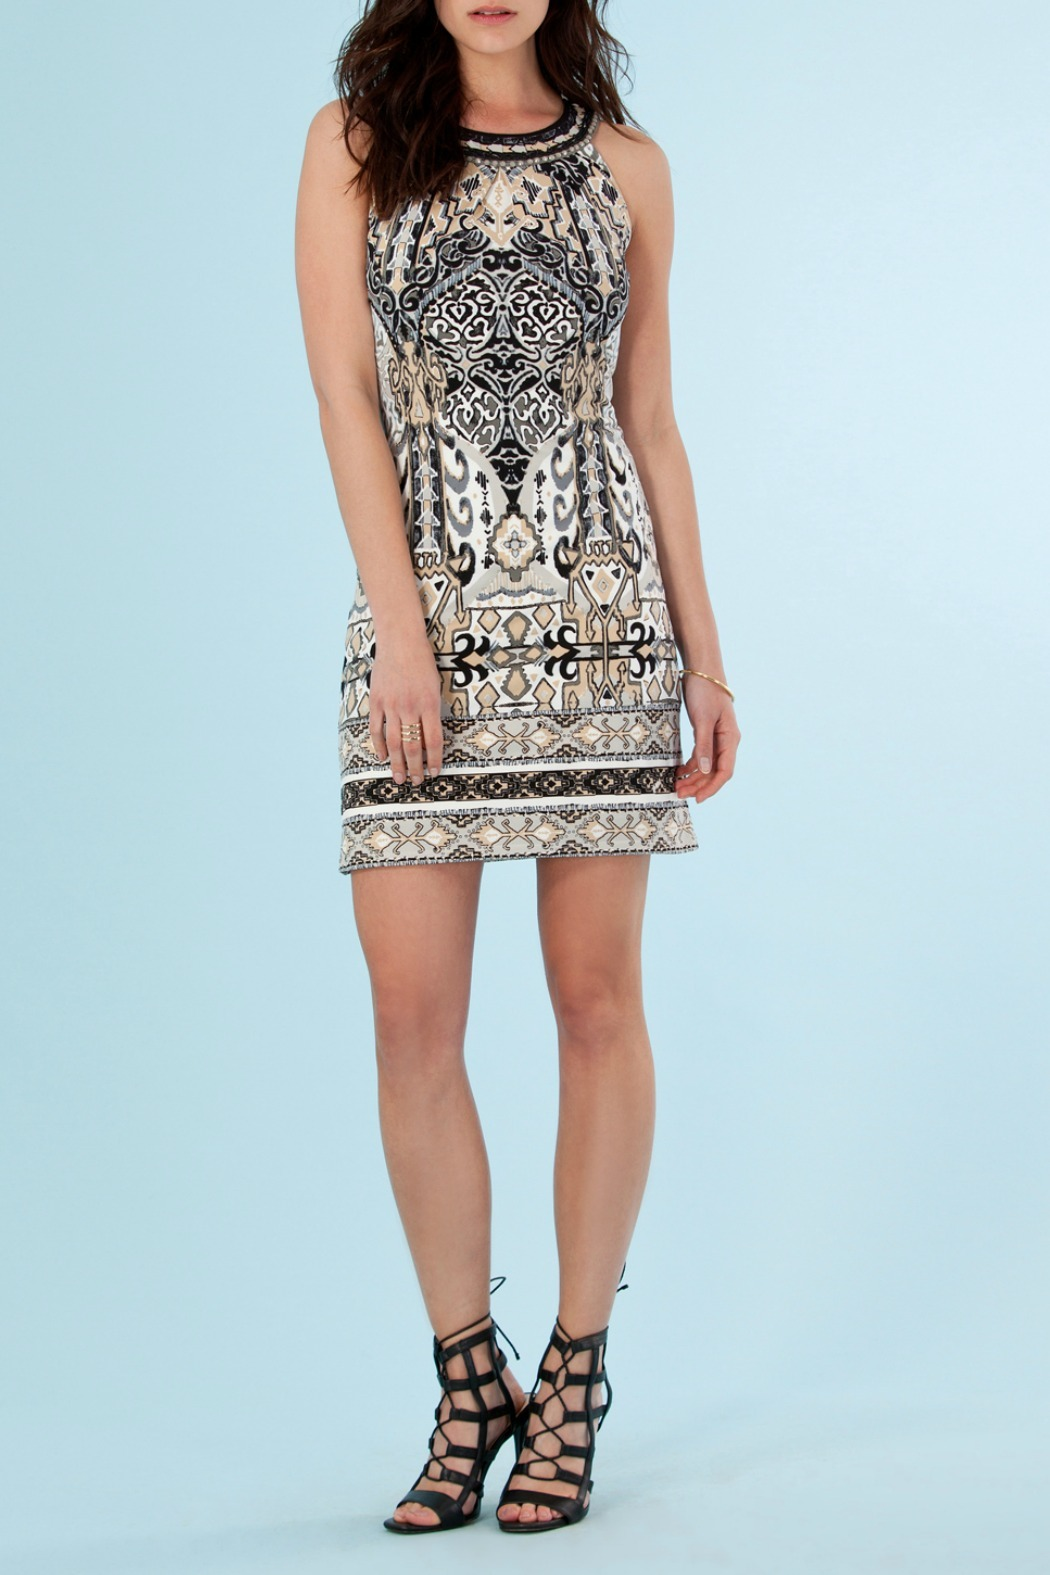 9b46e60adc1c1 Hale Bob Sarila Sleeveless Jersey Dress from New York by Hale Bob ...